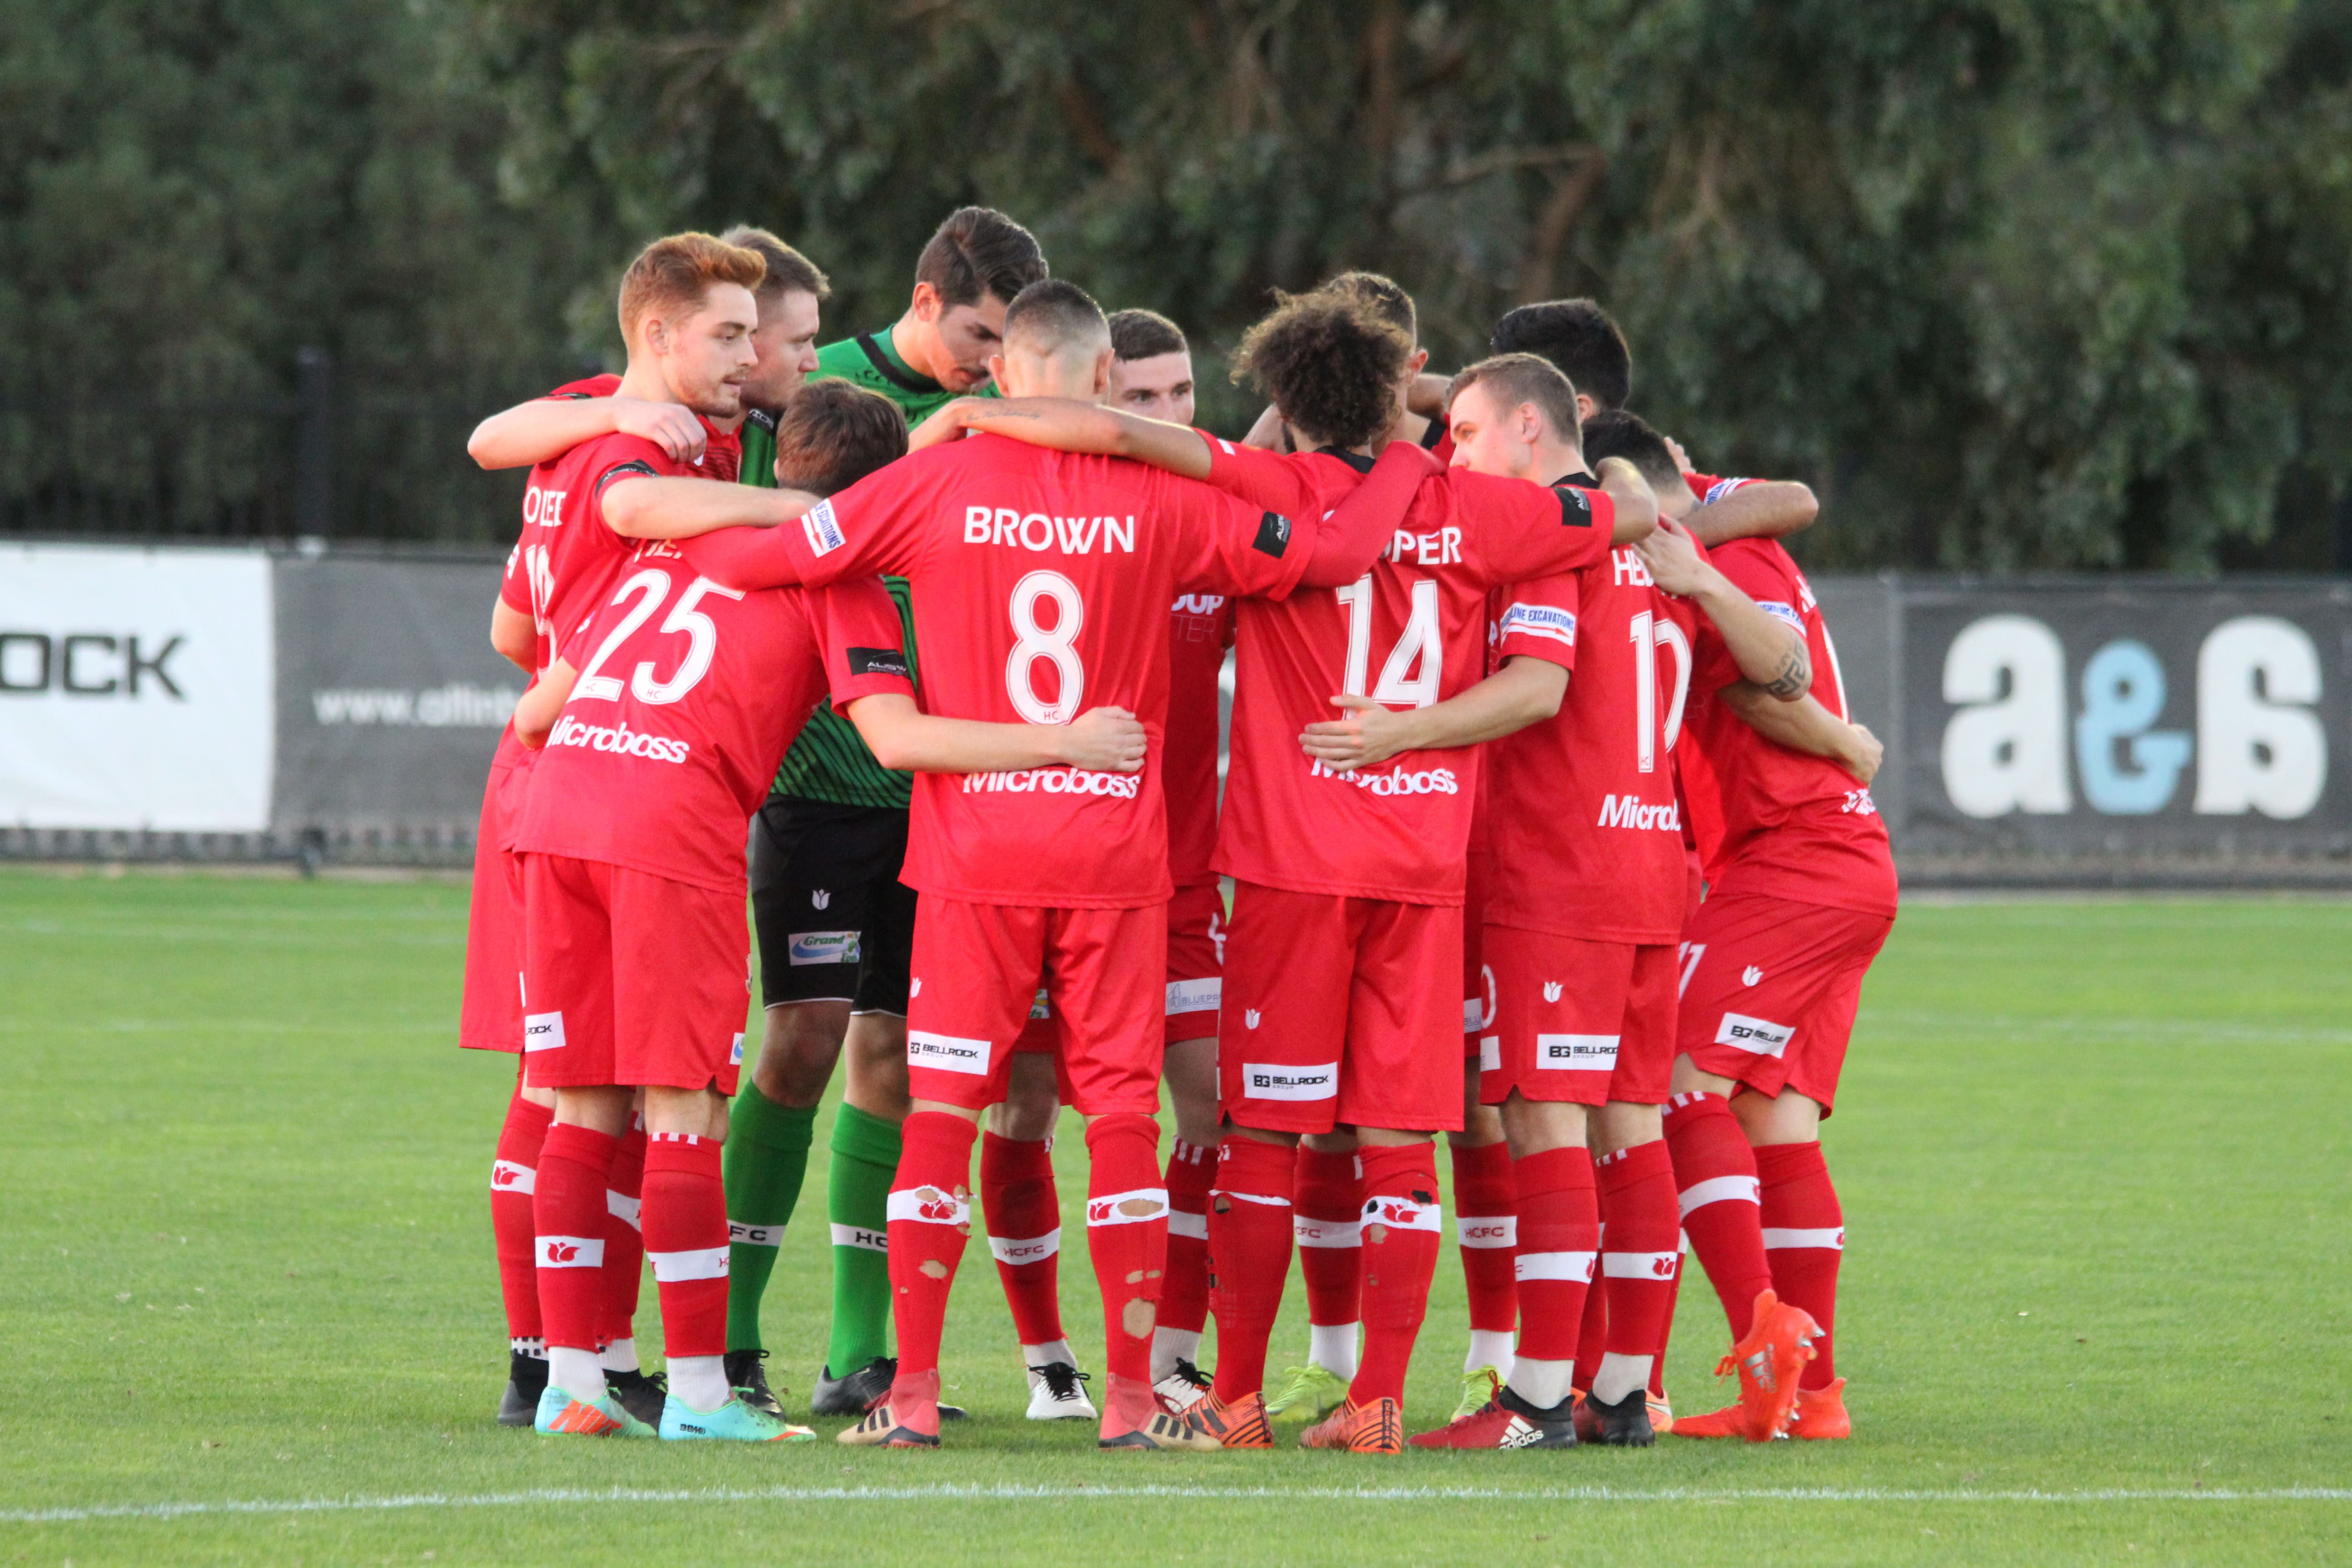 Round 8 Review: Hume City end Avondale's 7 game winning streak